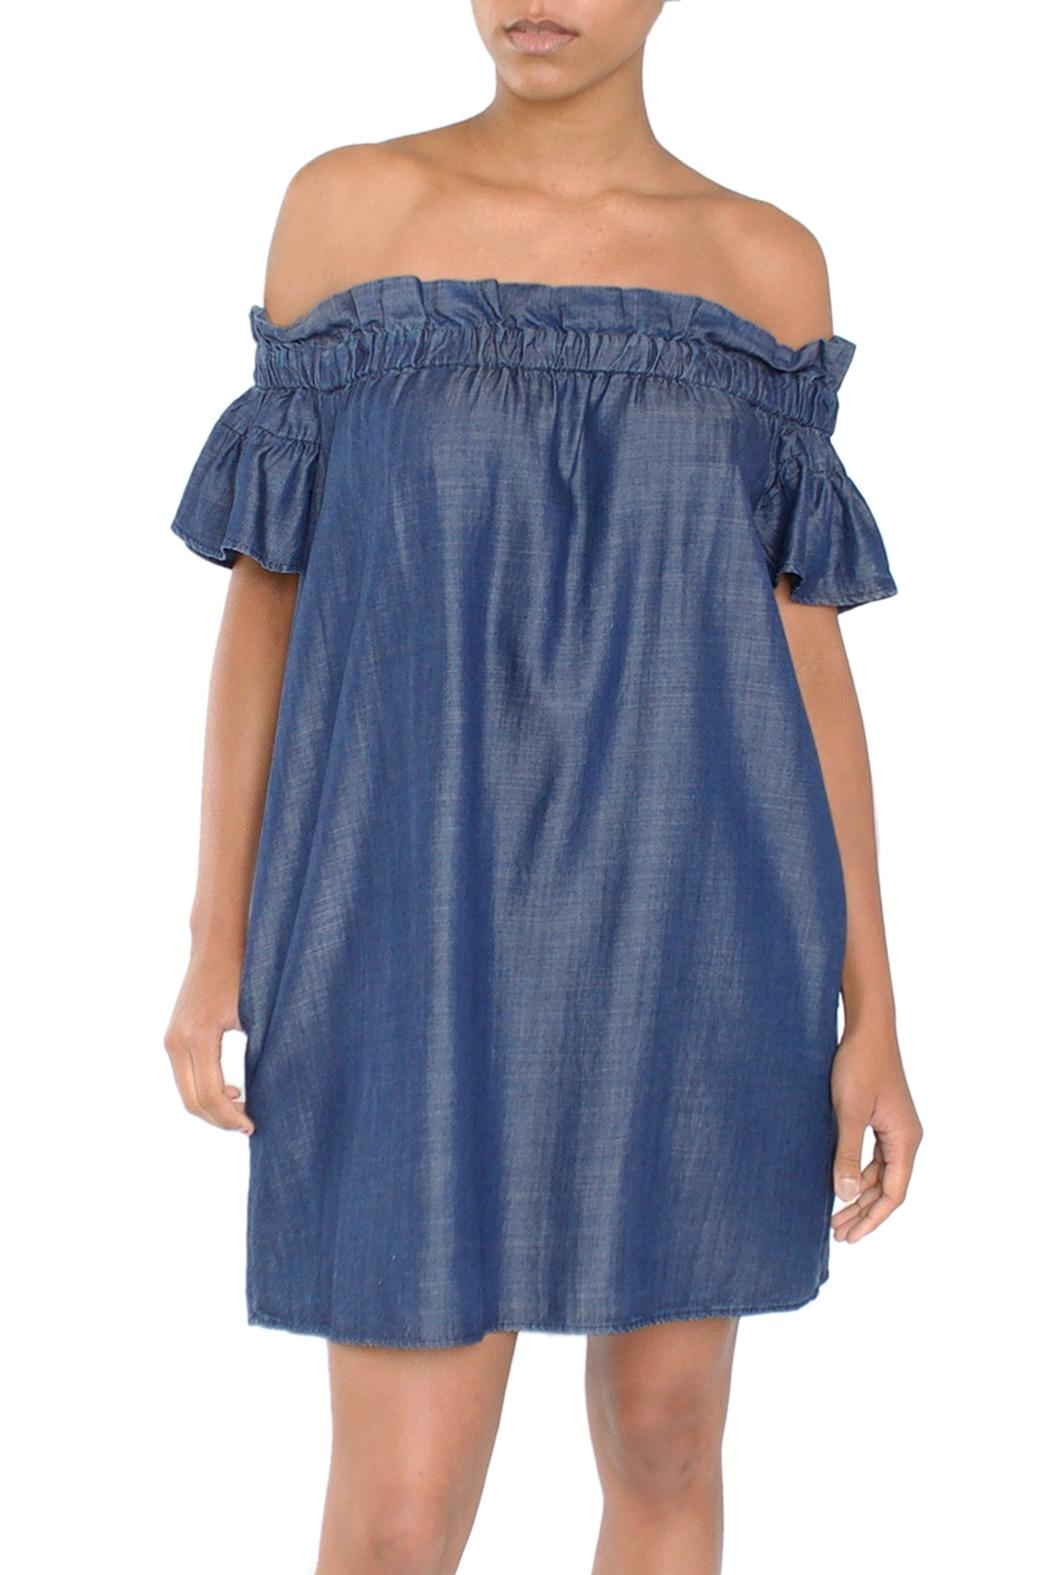 Laju Chambray Off-Shoulder Dress - Main Image